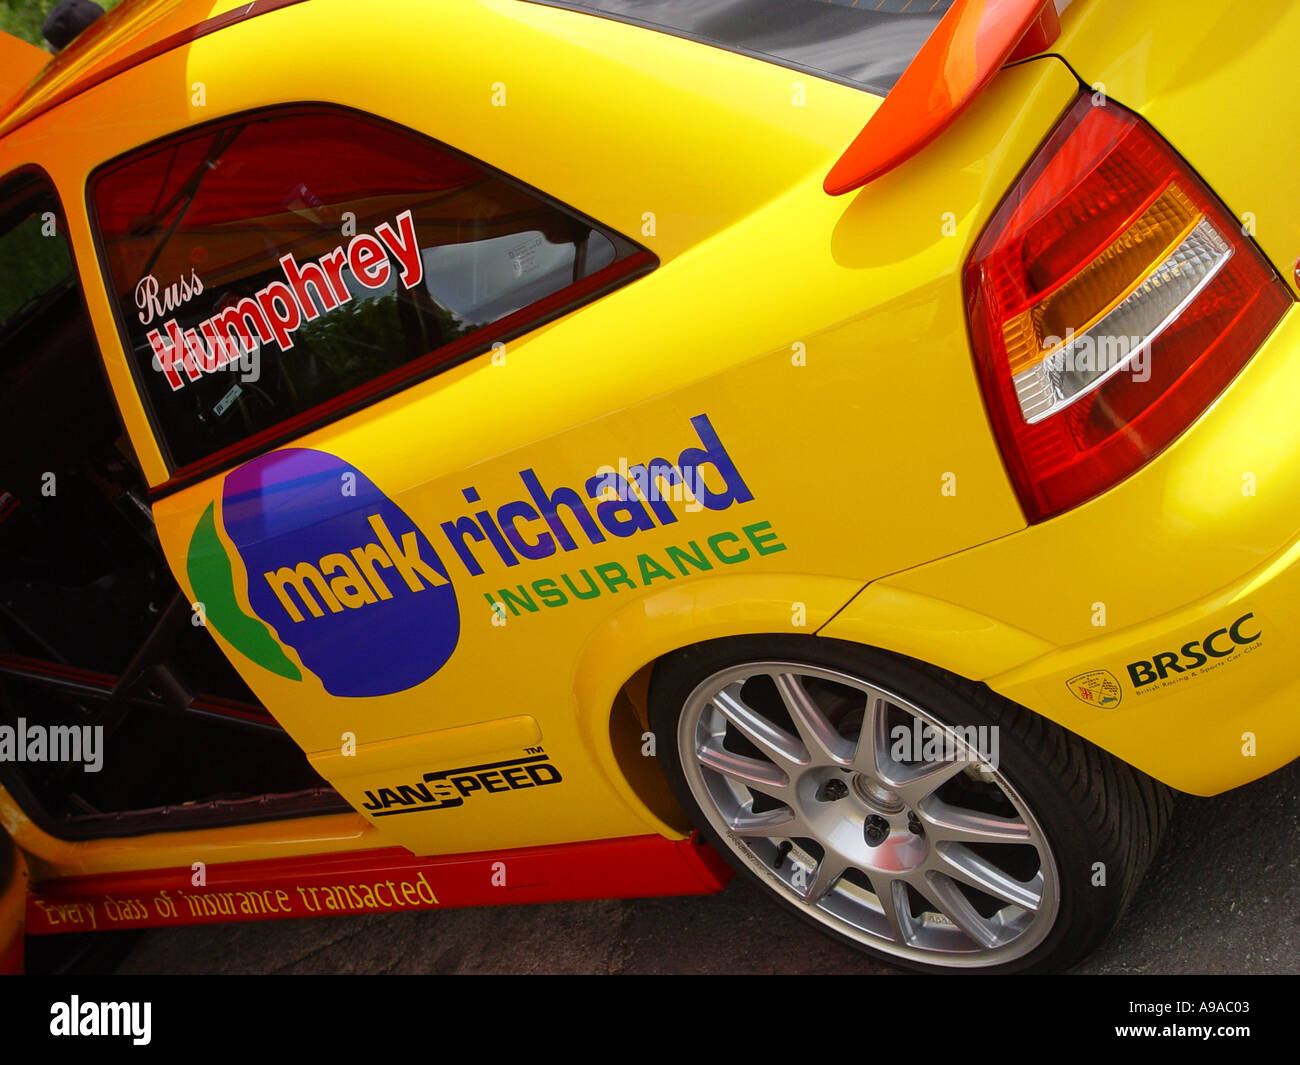 Motor racing car at an event England GB UK 2003 - Stock Image